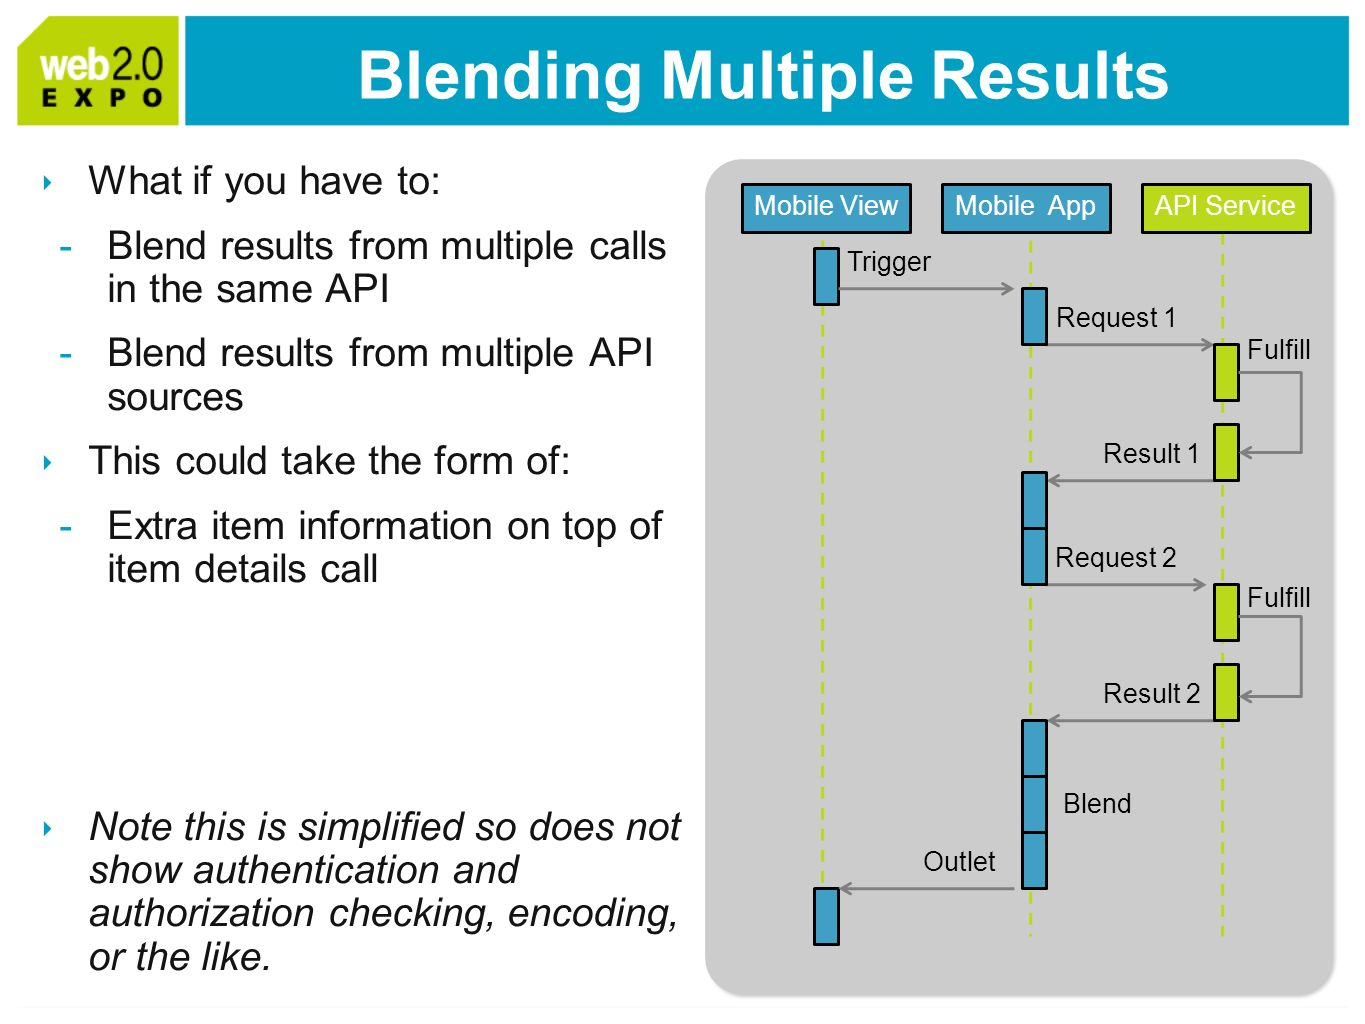 Blending Multiple Results What if you have to: -Blend results from multiple calls in the same API -Blend results from multiple API sources This could take the form of: -Extra item information on top of item details call Note this is simplified so does not show authentication and authorization checking, encoding, or the like.